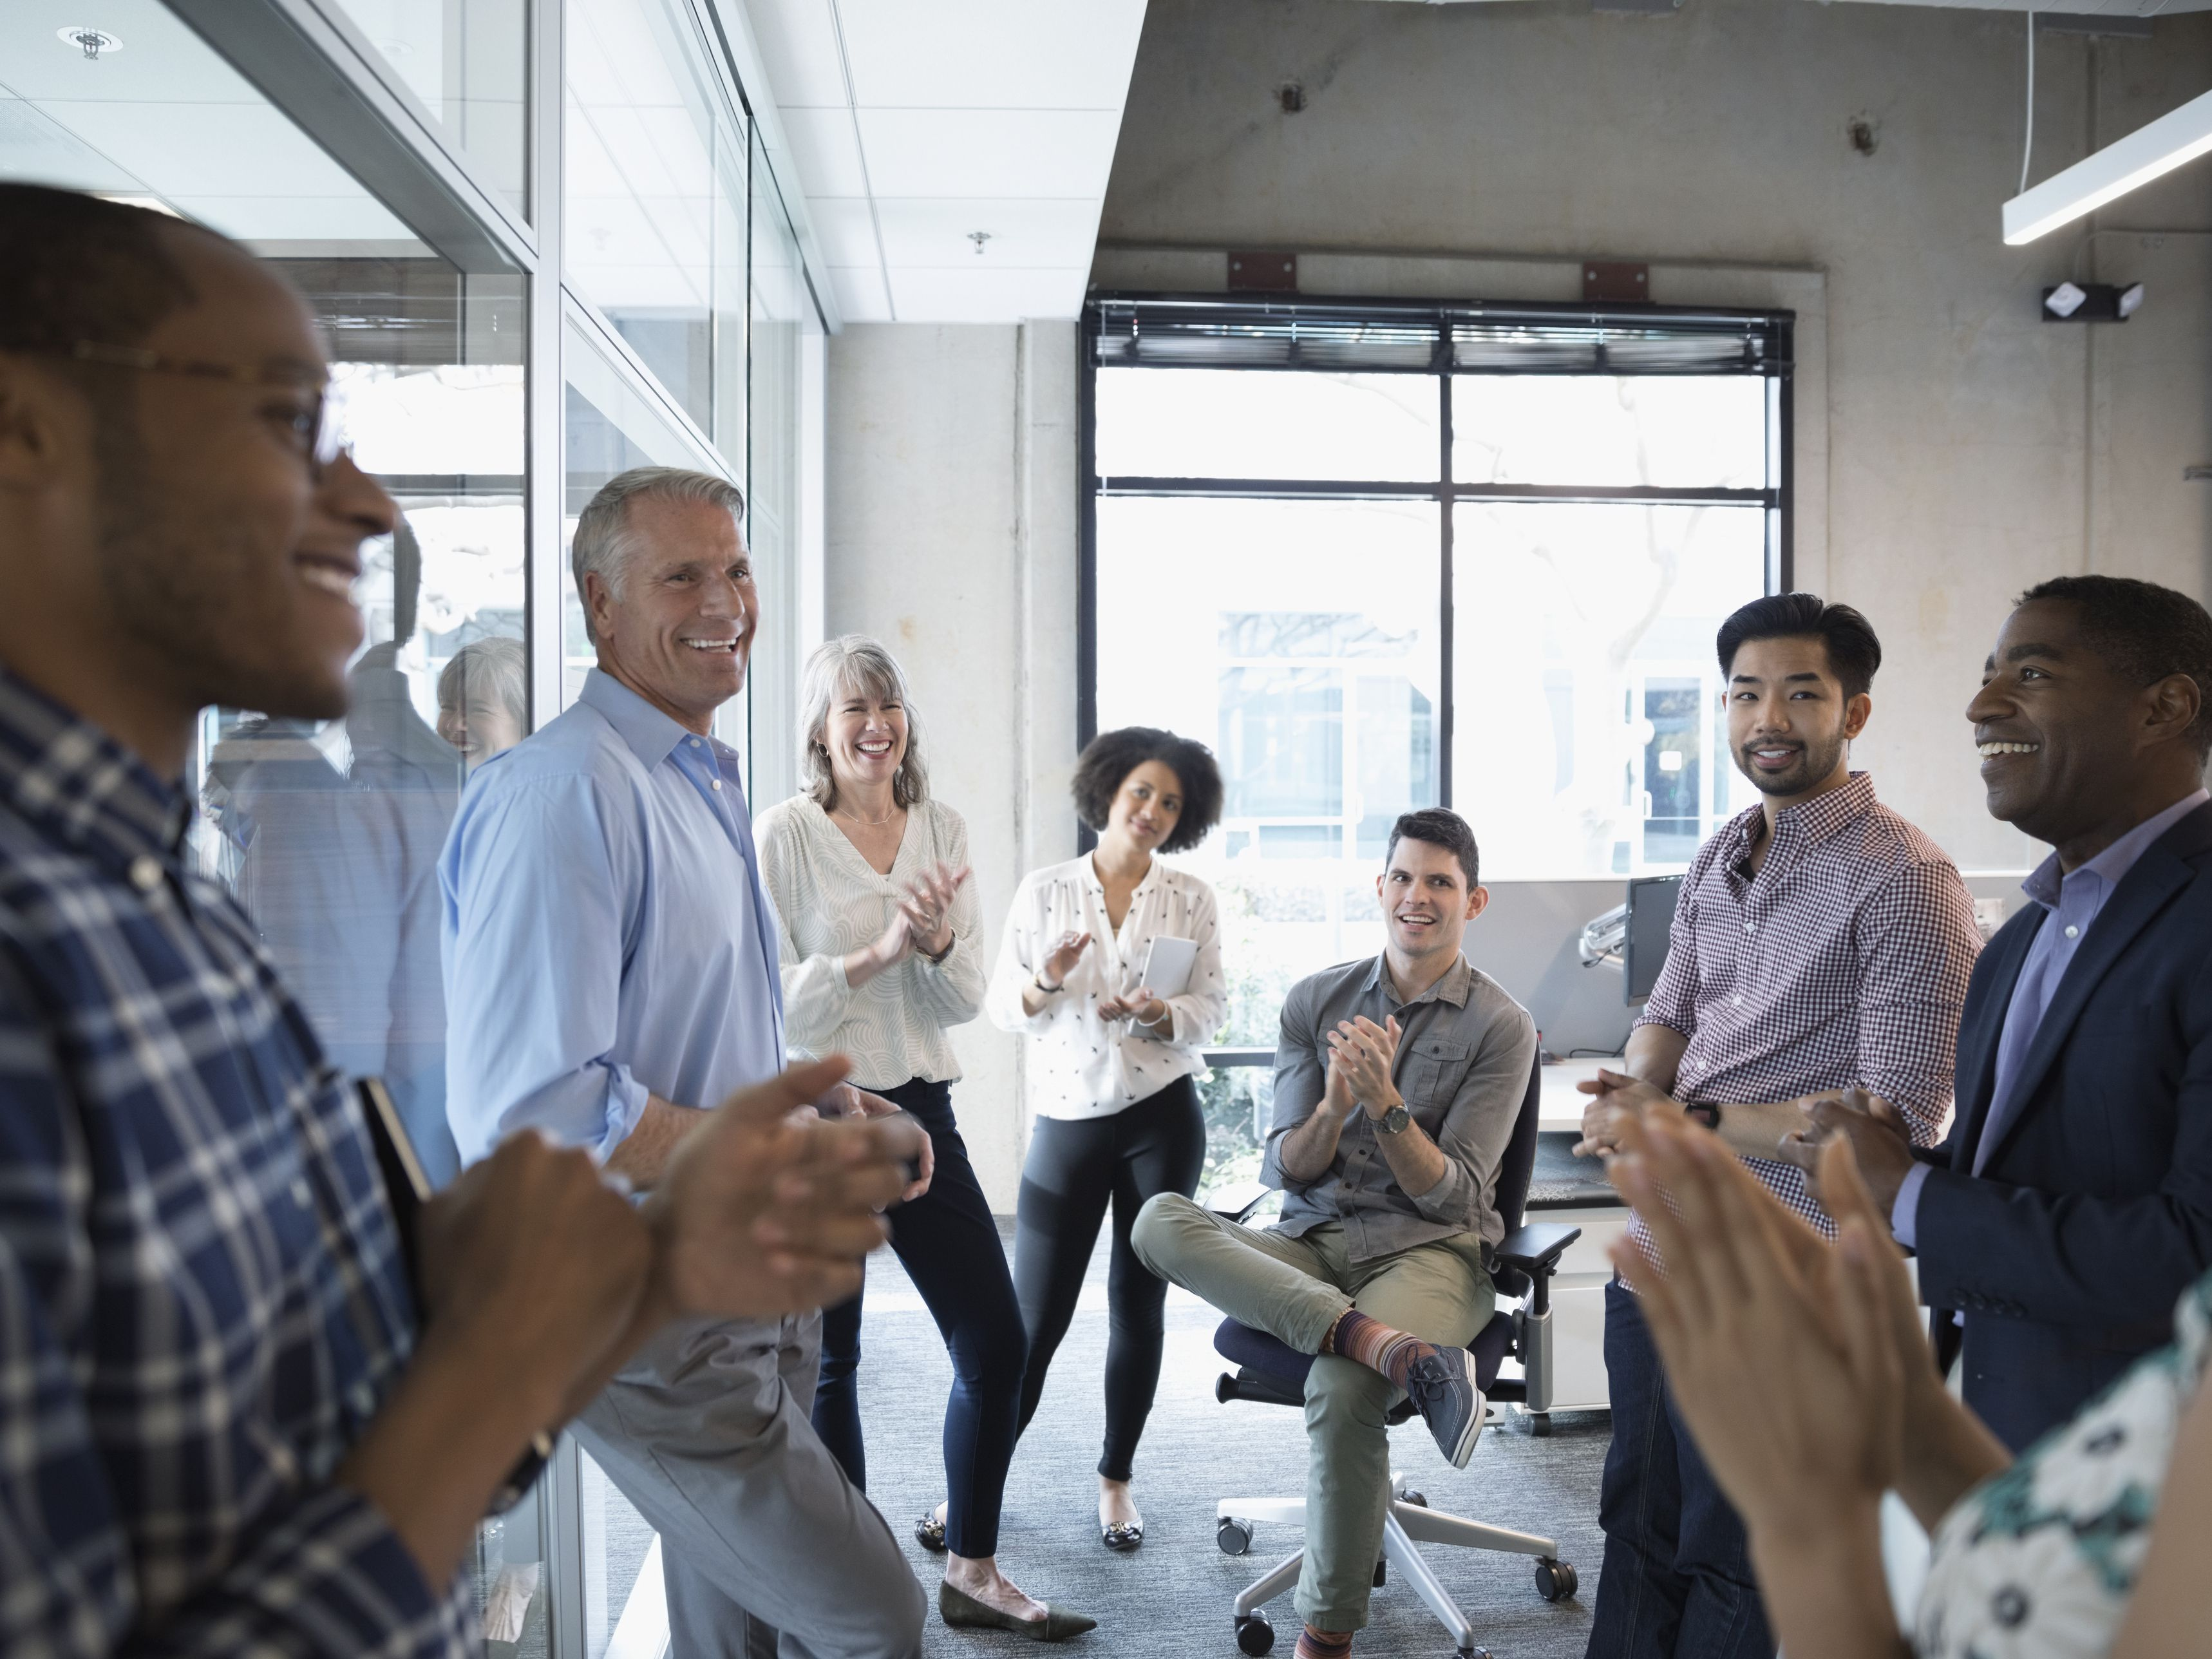 How to Ensure Gender Equality in the Workplace